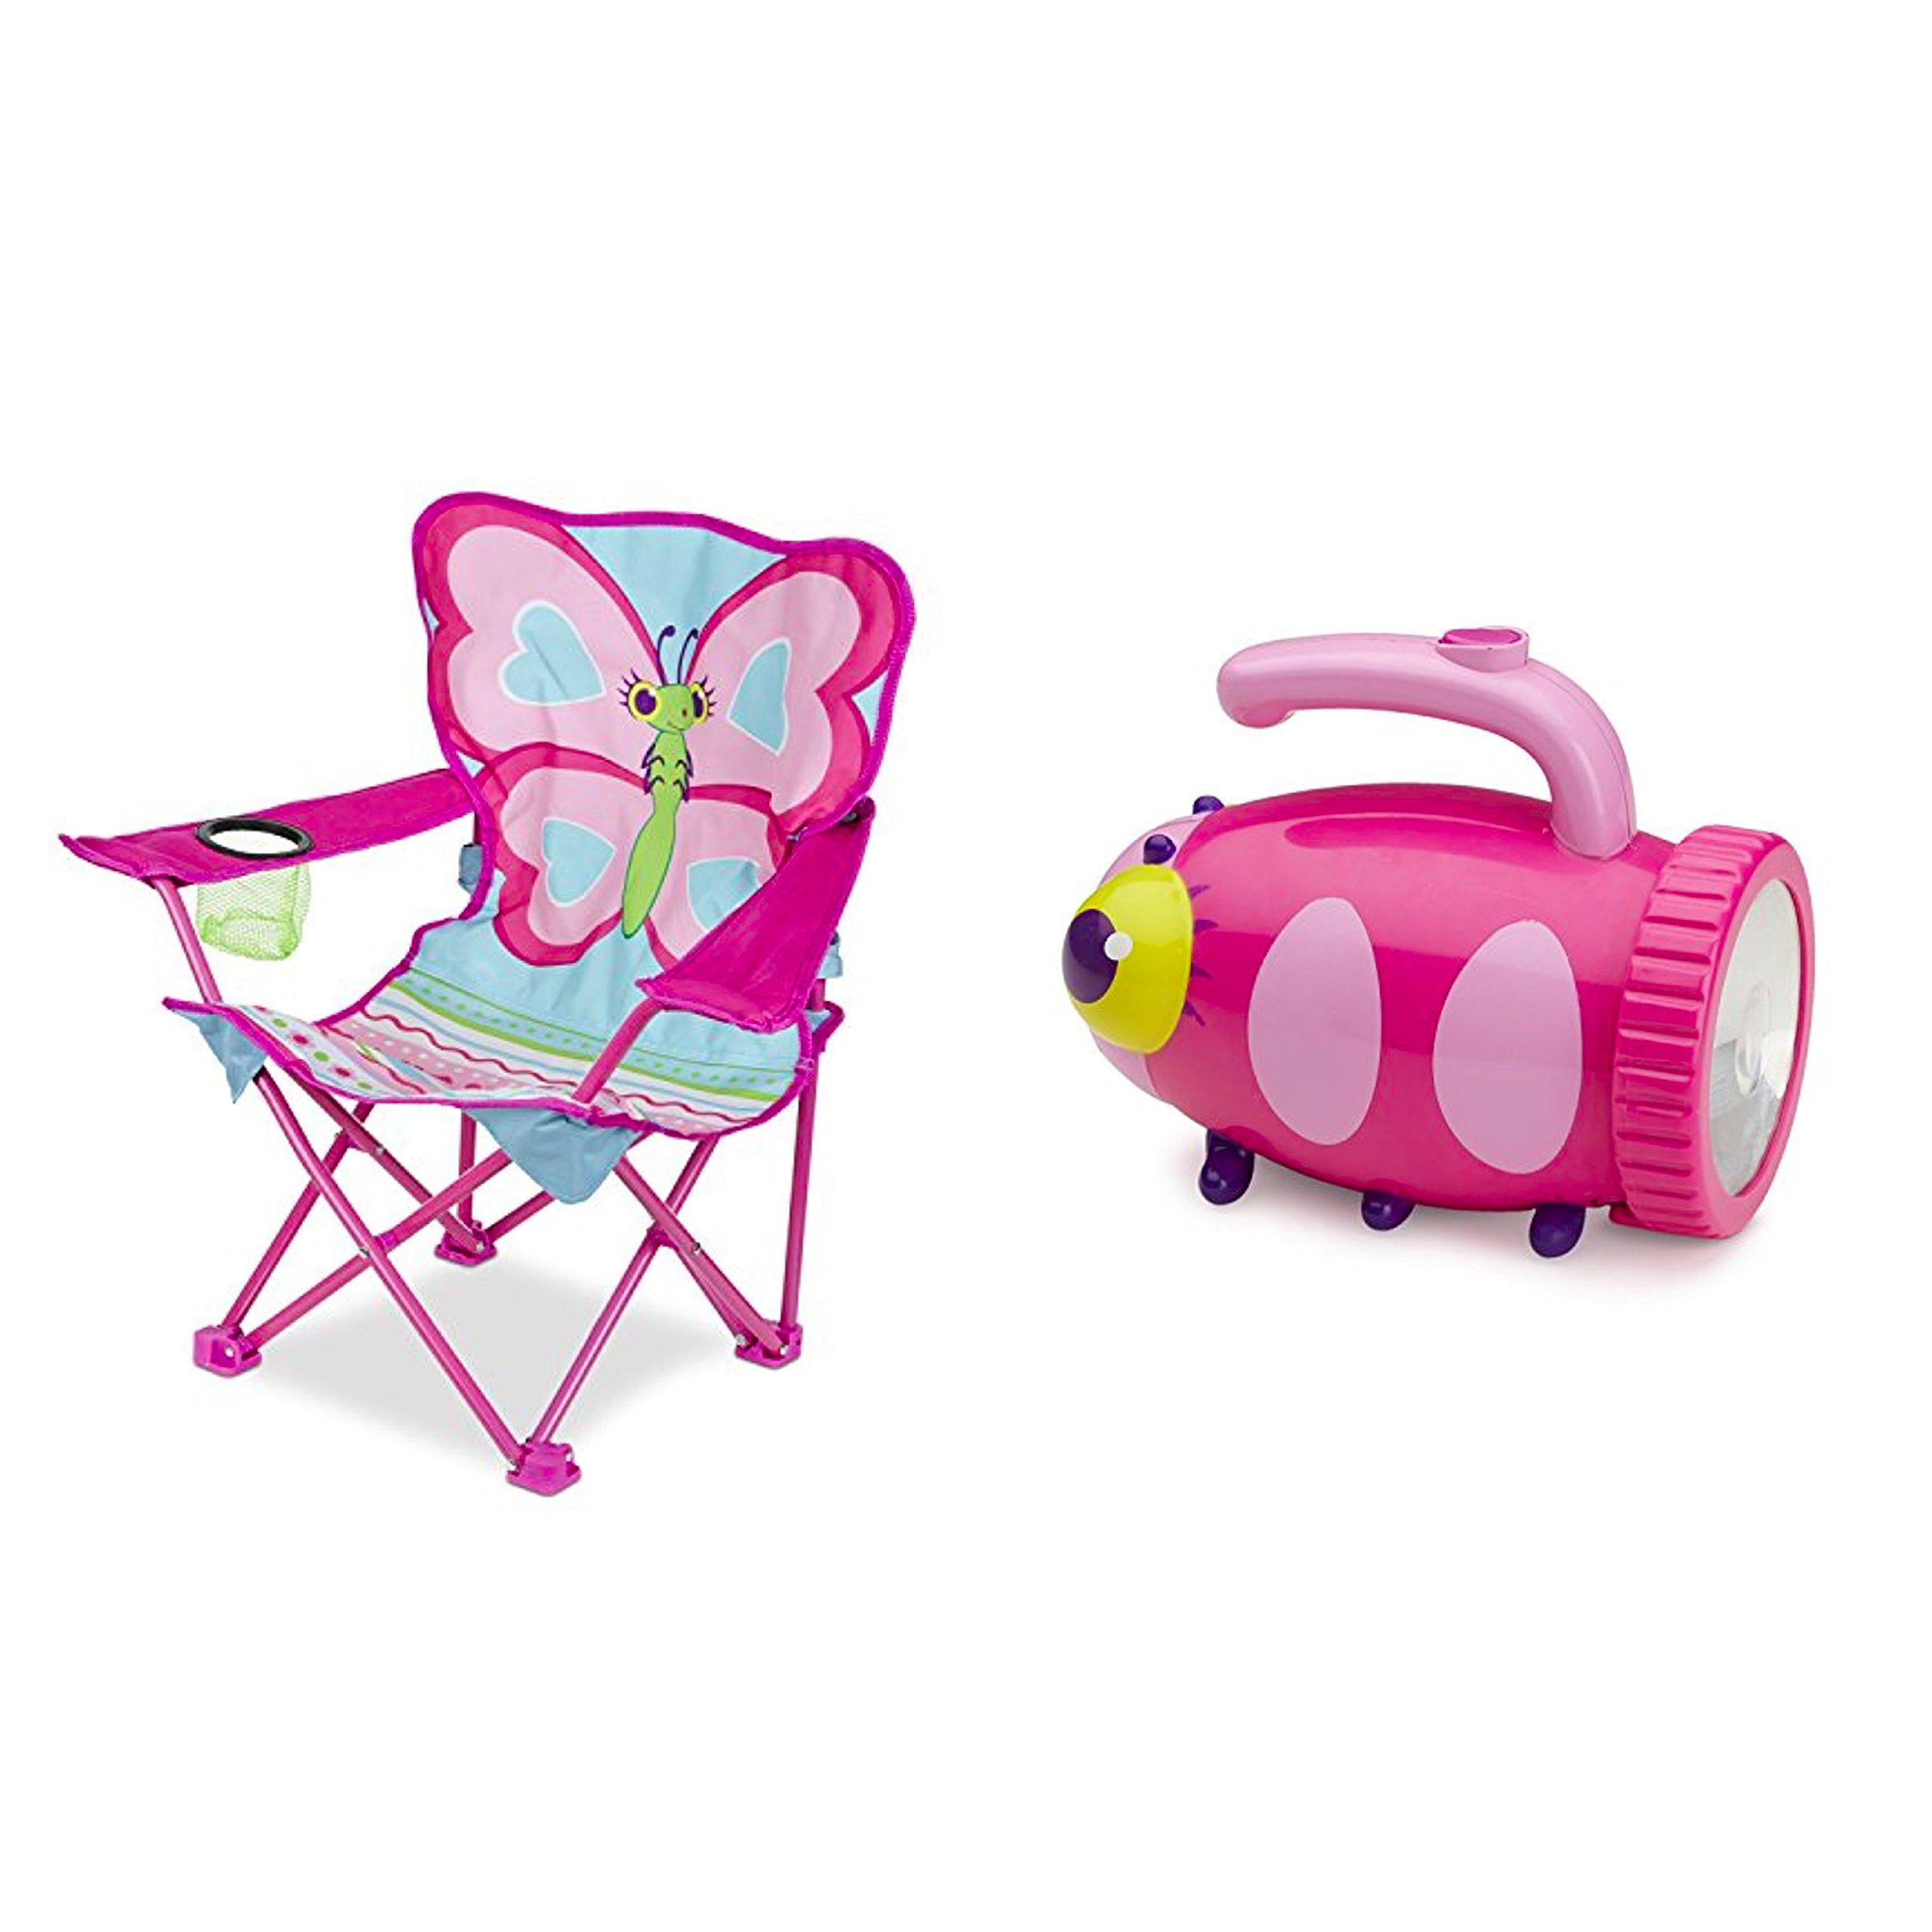 Island Time Brands Bundle Includes 2 Items - Melissa & Doug 27'' x 25'' x 15'' Cutie Pie Butterfly Camp Chair and Melissa & Doug Sunny Patch Trixie Ladybug Flashlight With Easy-Grip Handle